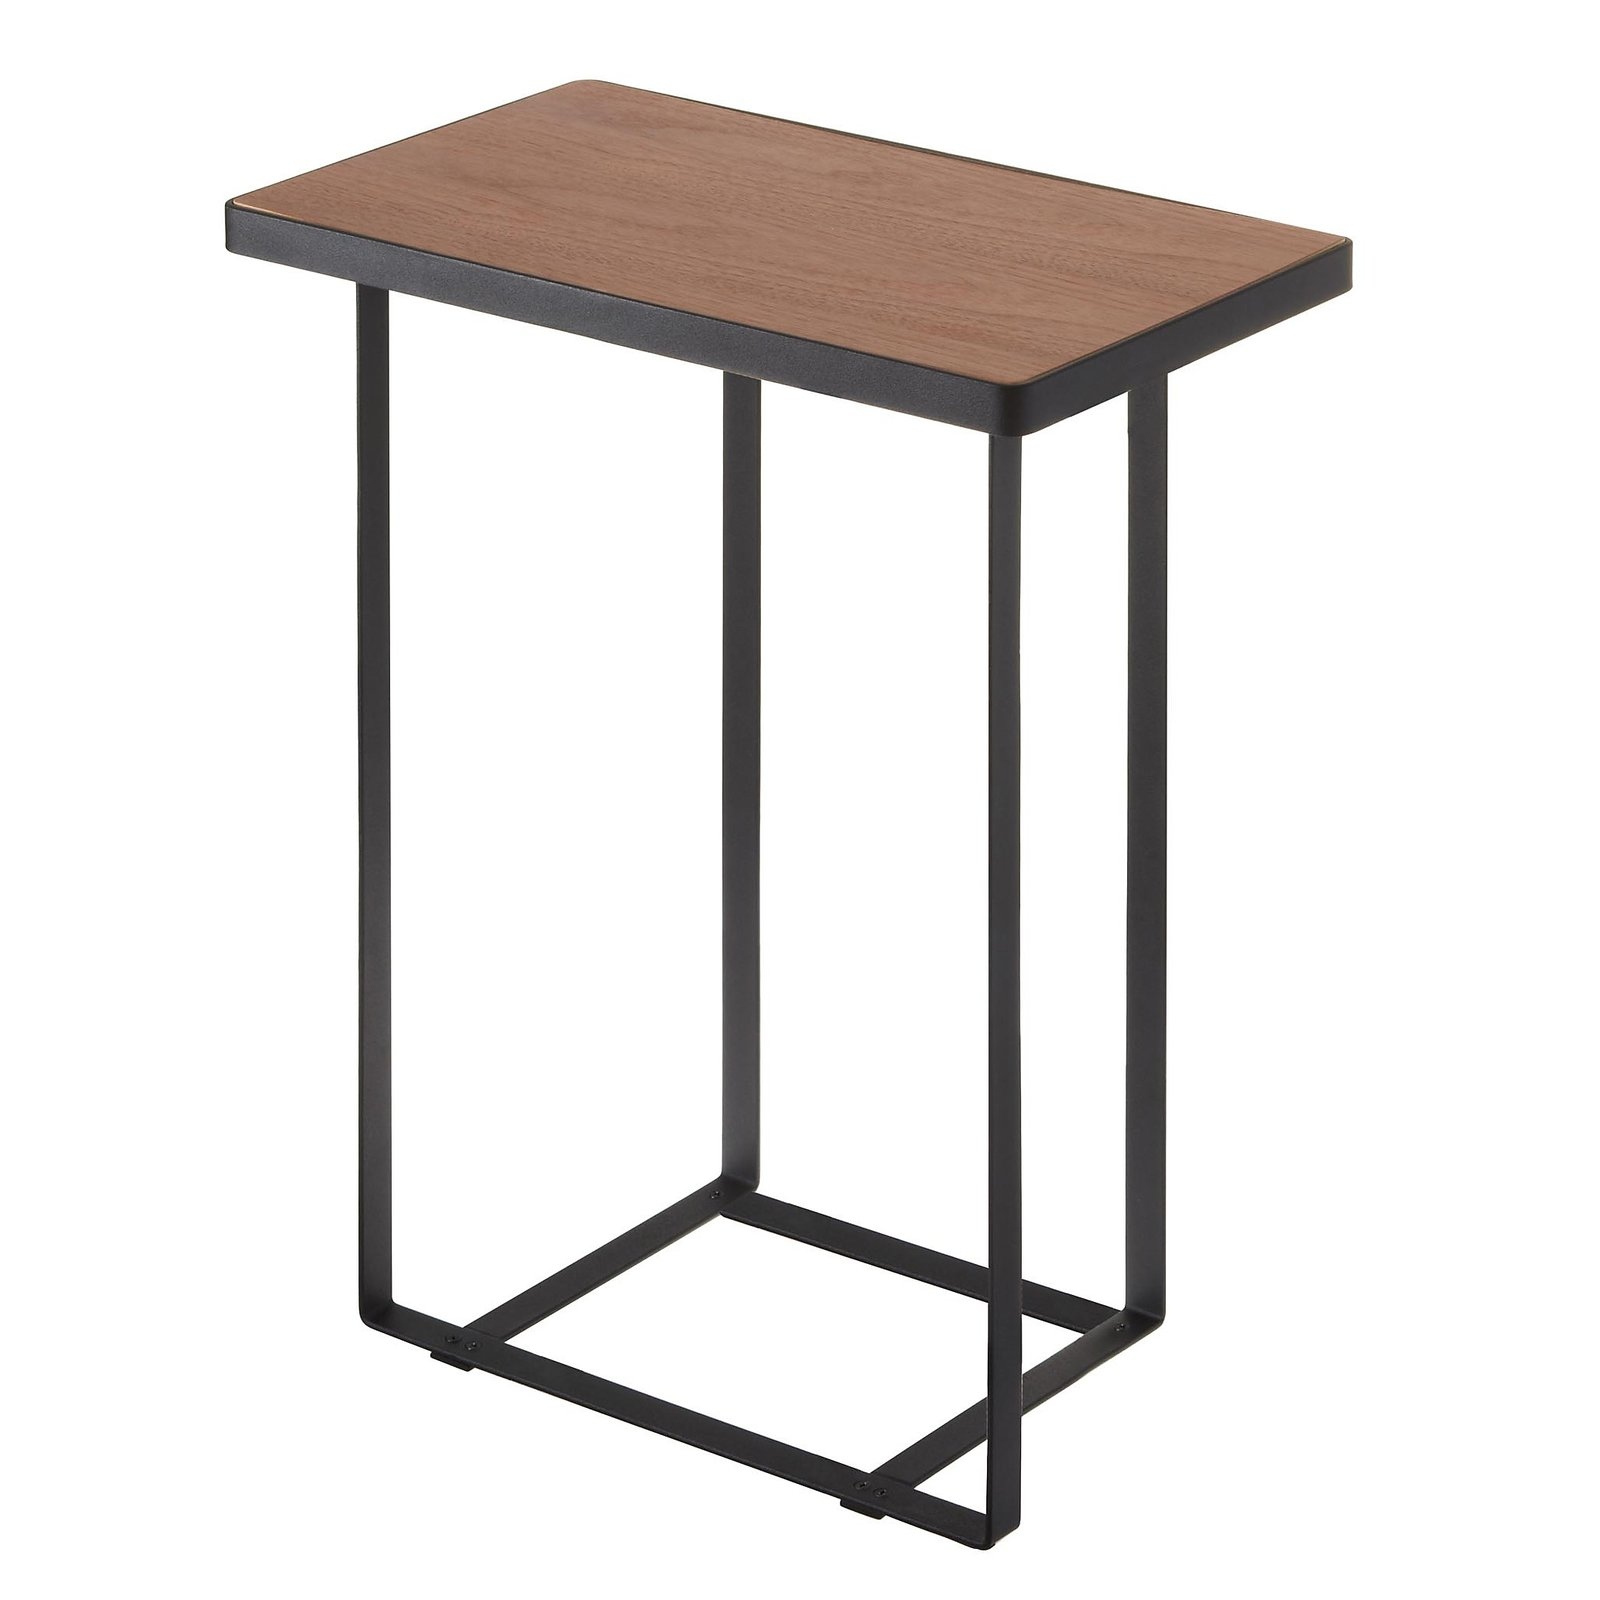 tower accent table huckberry dwell large knurl nesting tables set two mosaic furniture patio covers wooden threshold bar small wood end corner side ikea white kitchen bedroom